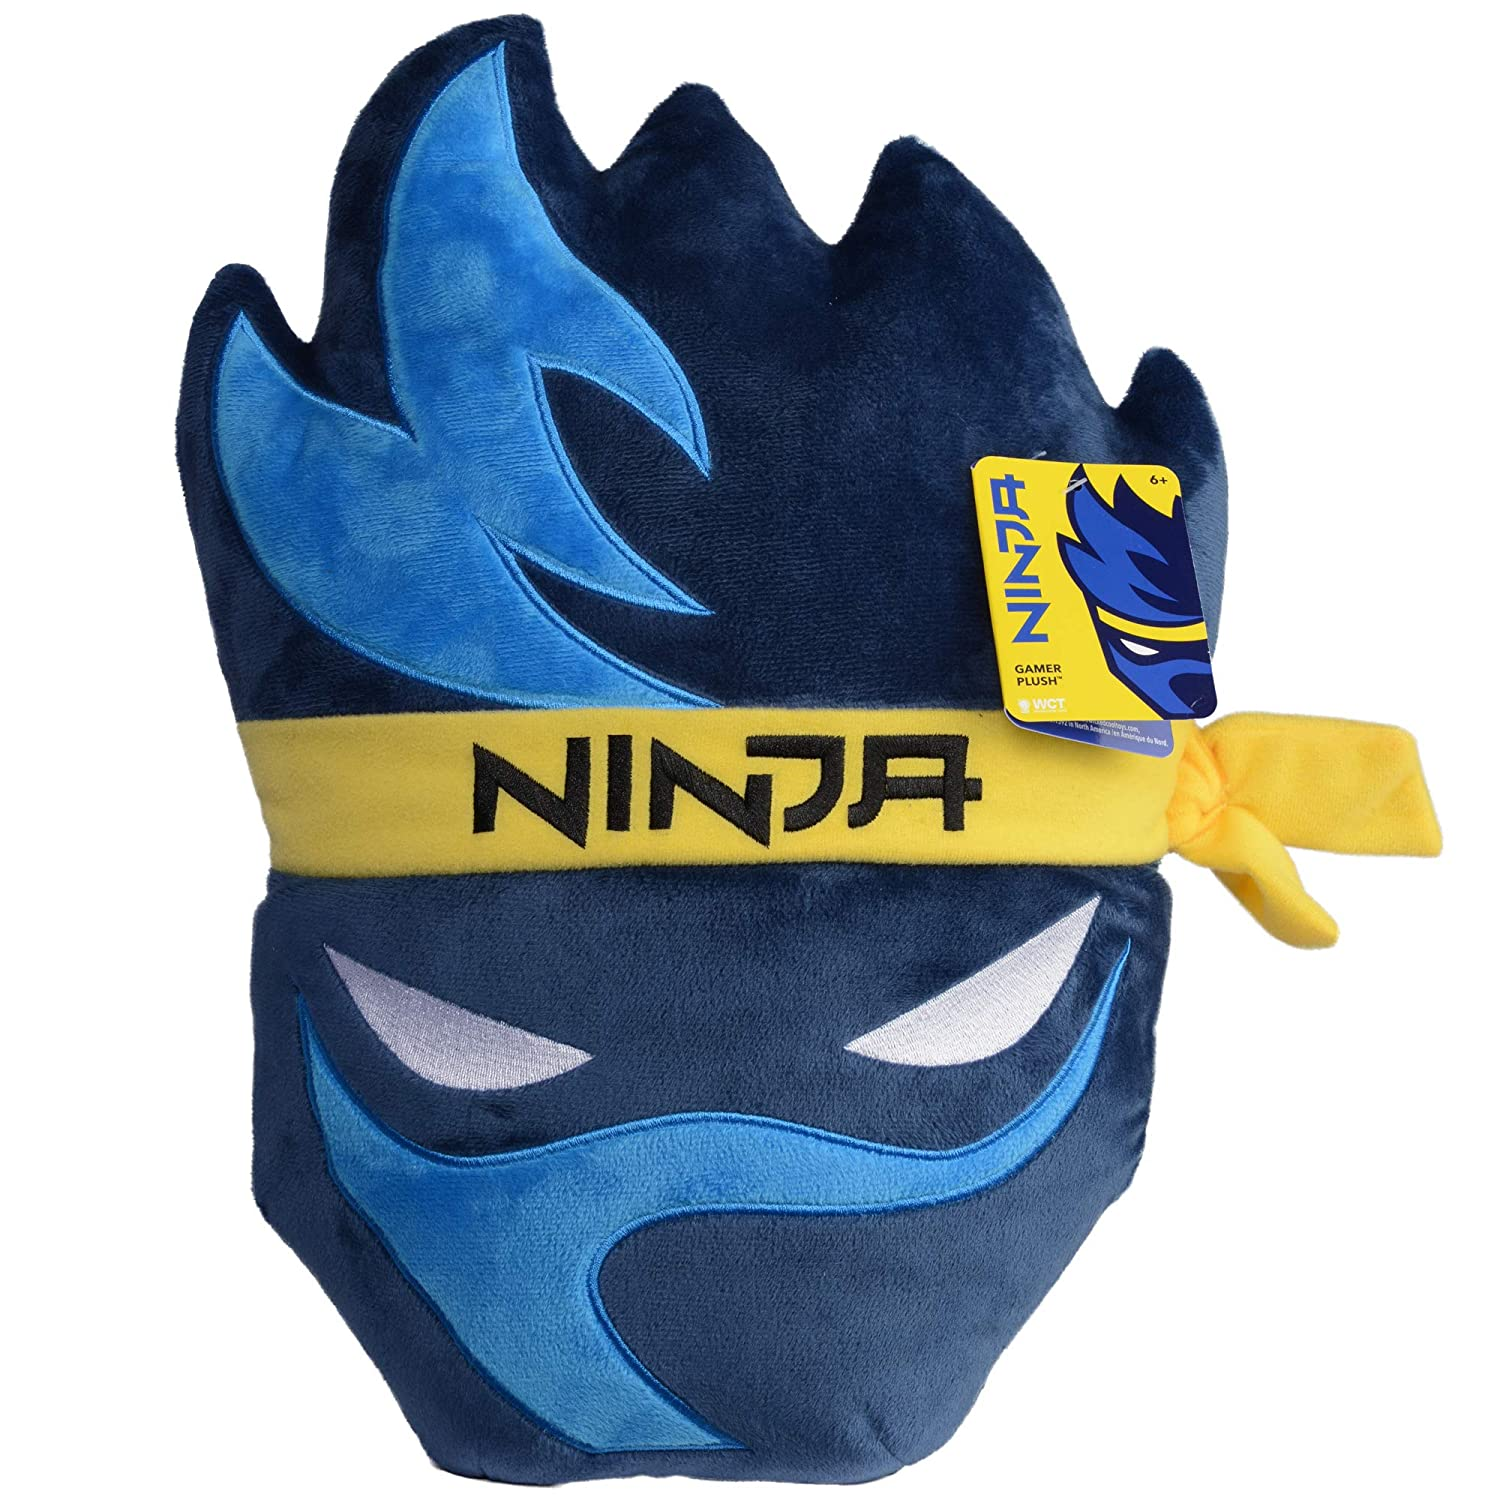 Wicked Cool Toys Ninja Gamer Chair Plush Pillow - Game Room Accessory and Chair Cushion - Iconic Ninja Streamer Logo - 15 Inch - Ages 6+